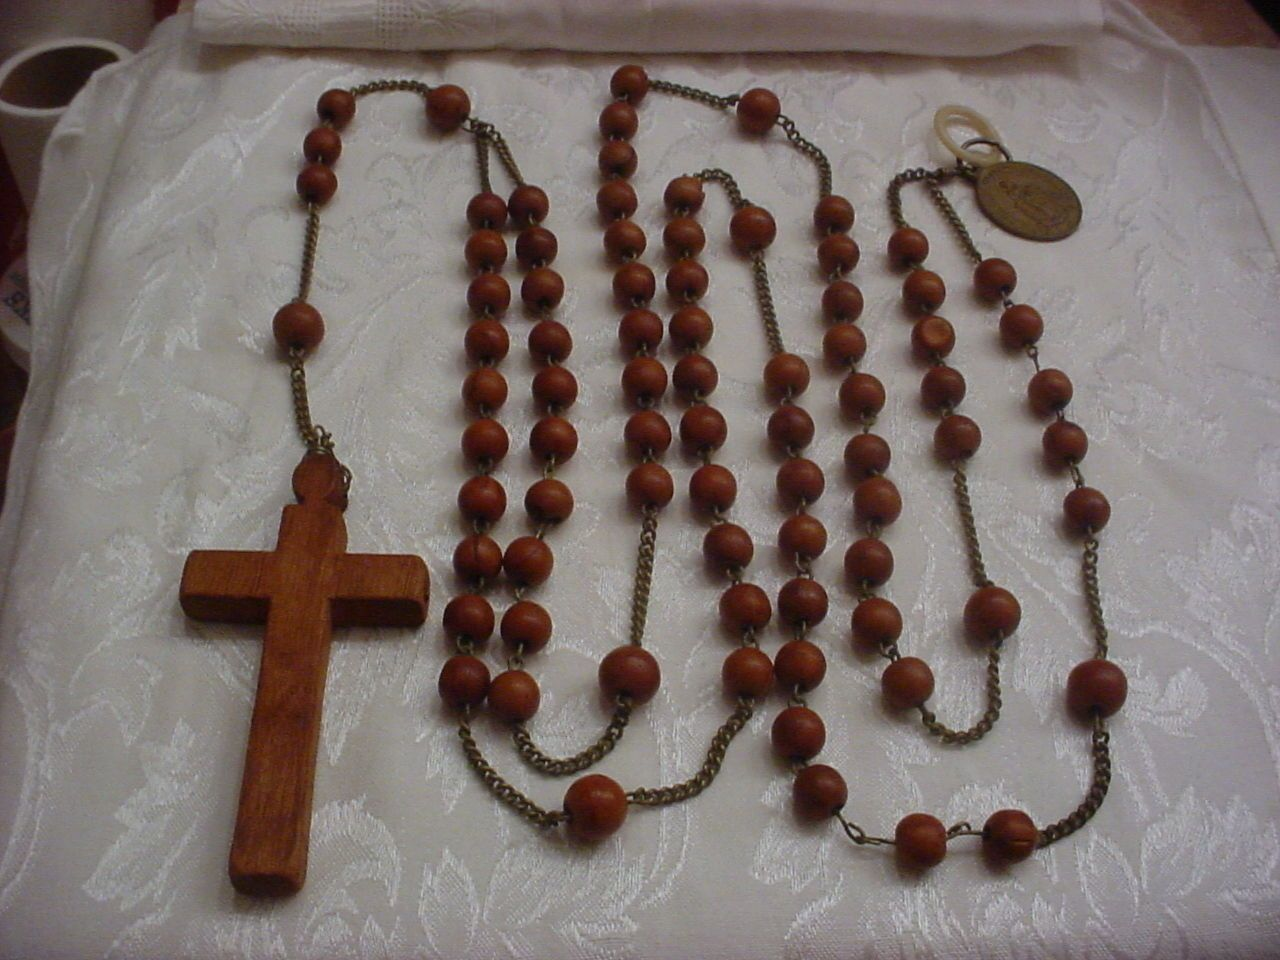 hight resolution of franciscan crown rosary 19 early 20th century rosary beads small rosary beads crown rosary diagram